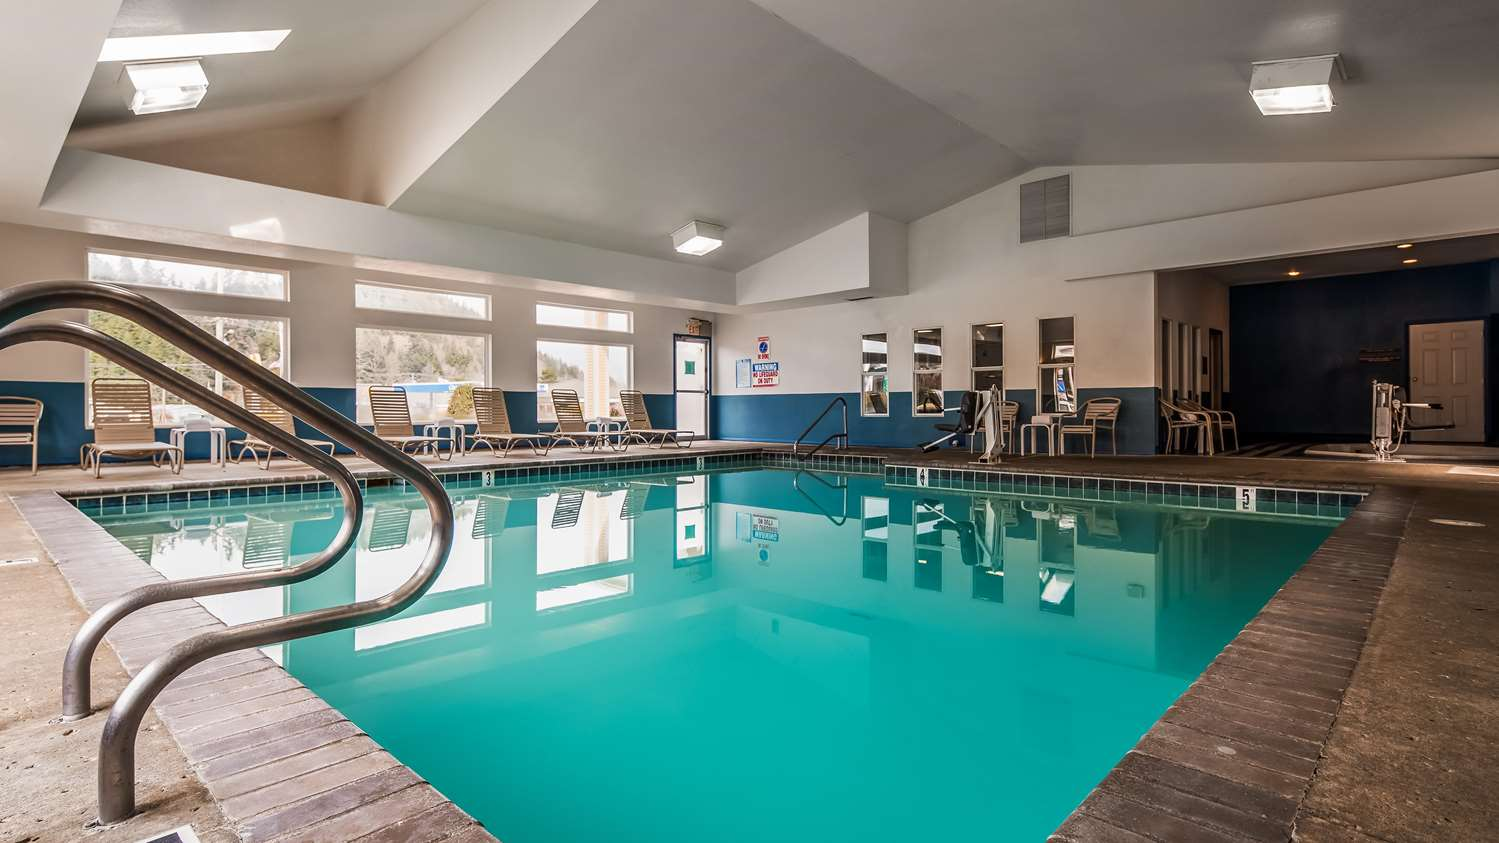 Pool - Best Western Salbasgeon Inn & Suites Reedsport